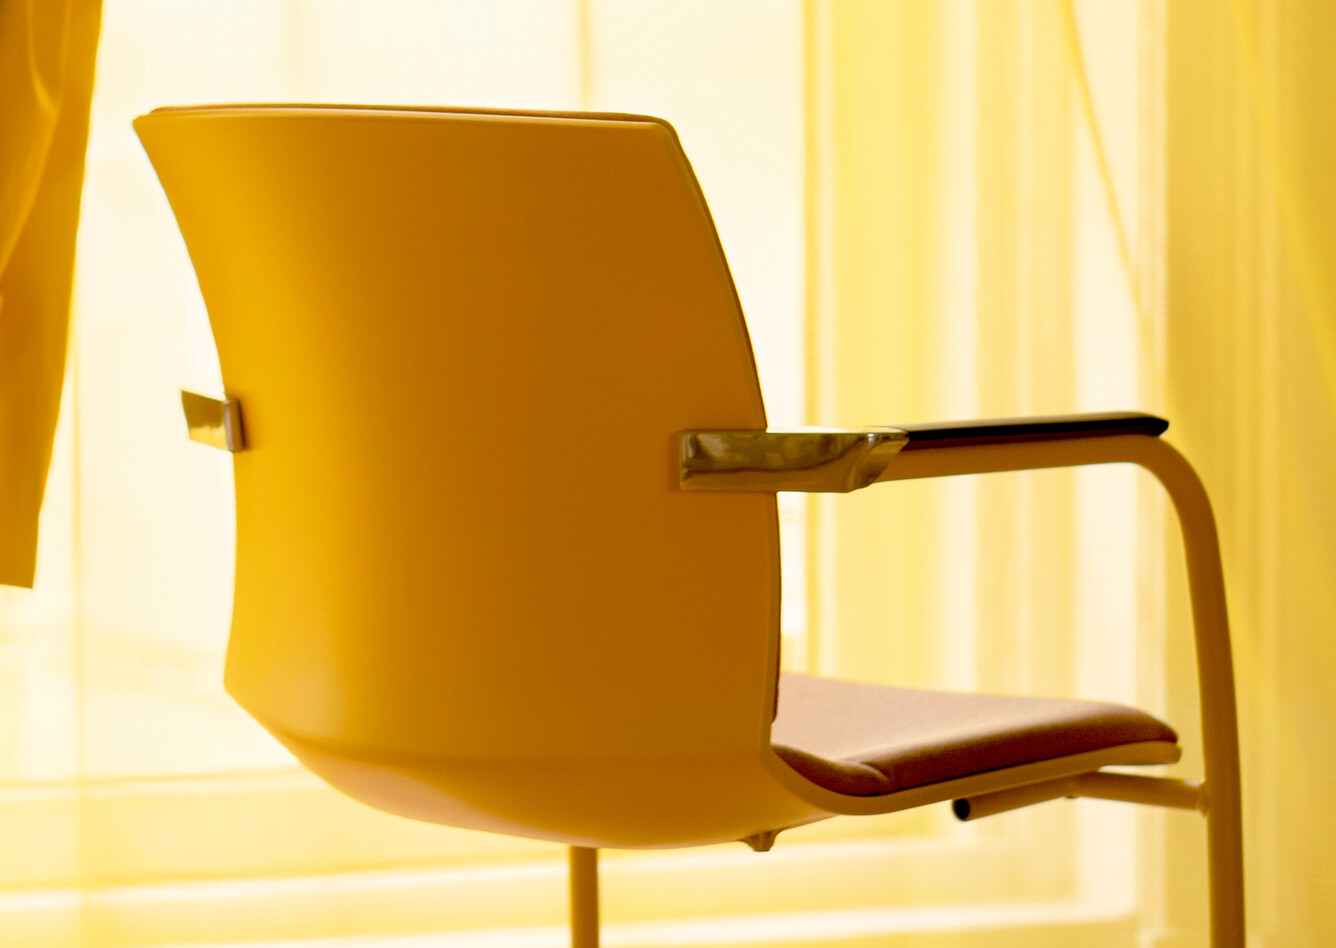 Royal Ahrend Well cantilever chair in yellow at Kvadrat store in Amsterdam